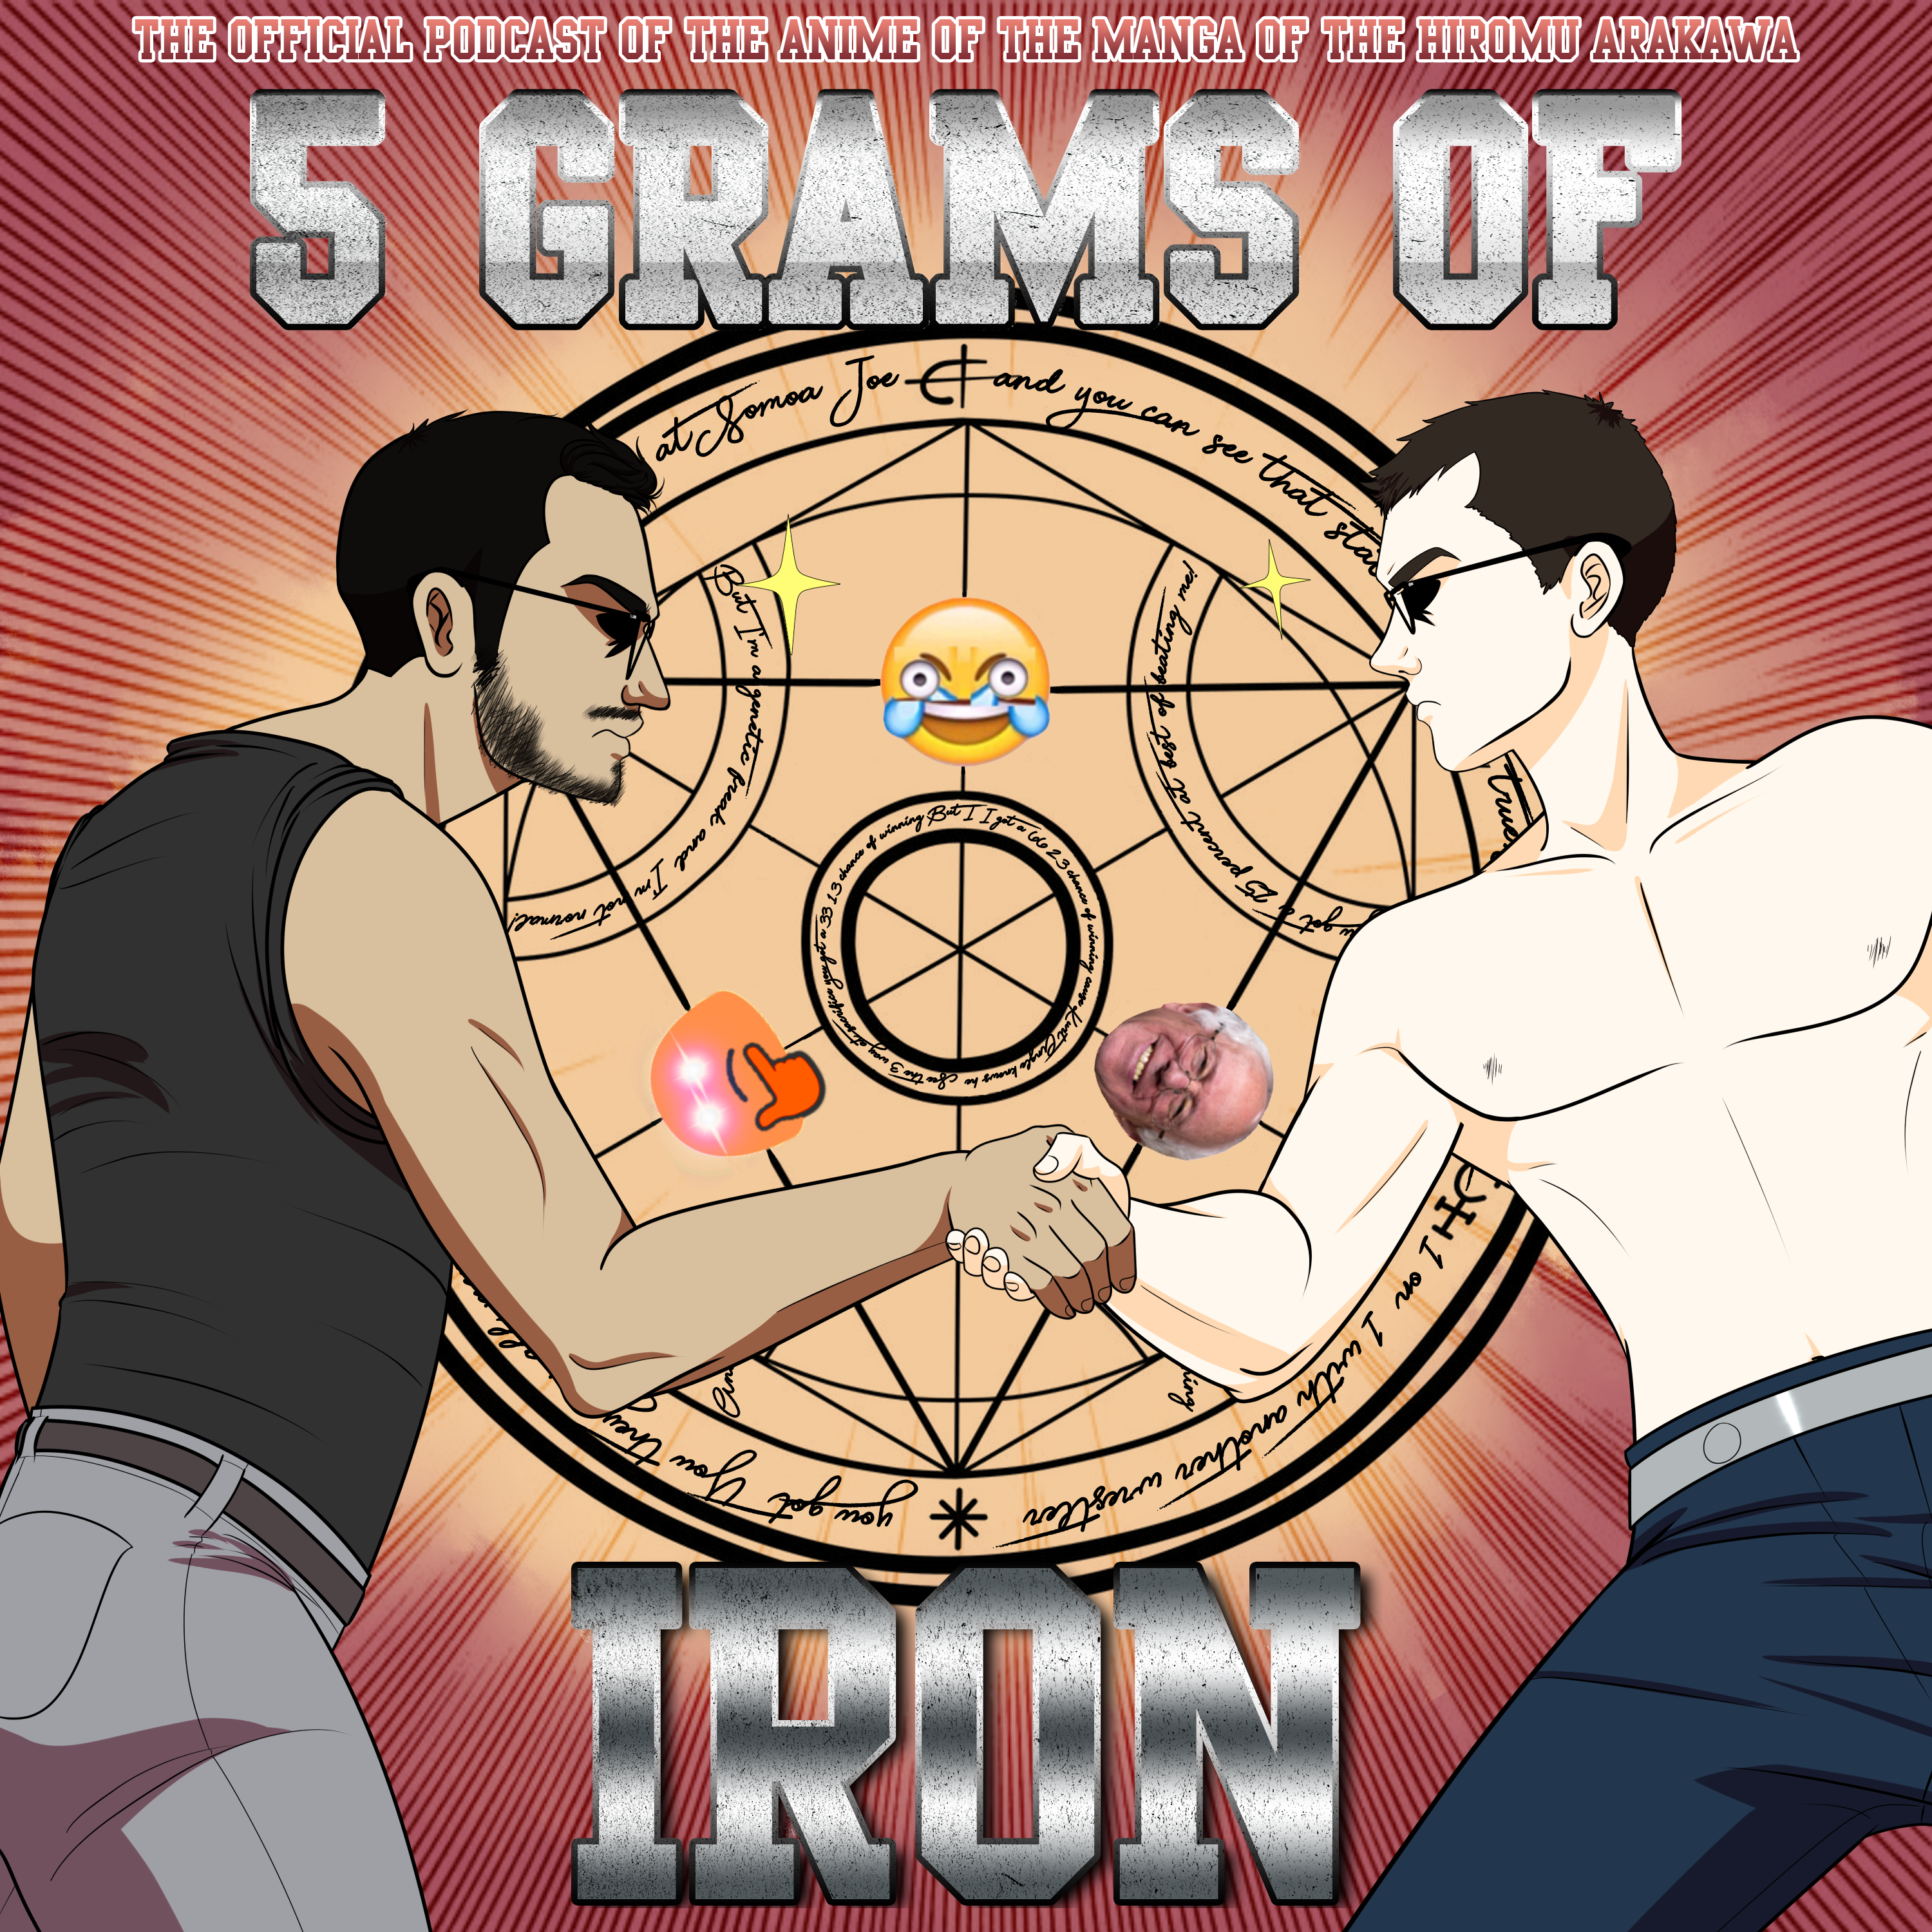 5 Grams of Iron - Episode 23: Eating My Cereal show art